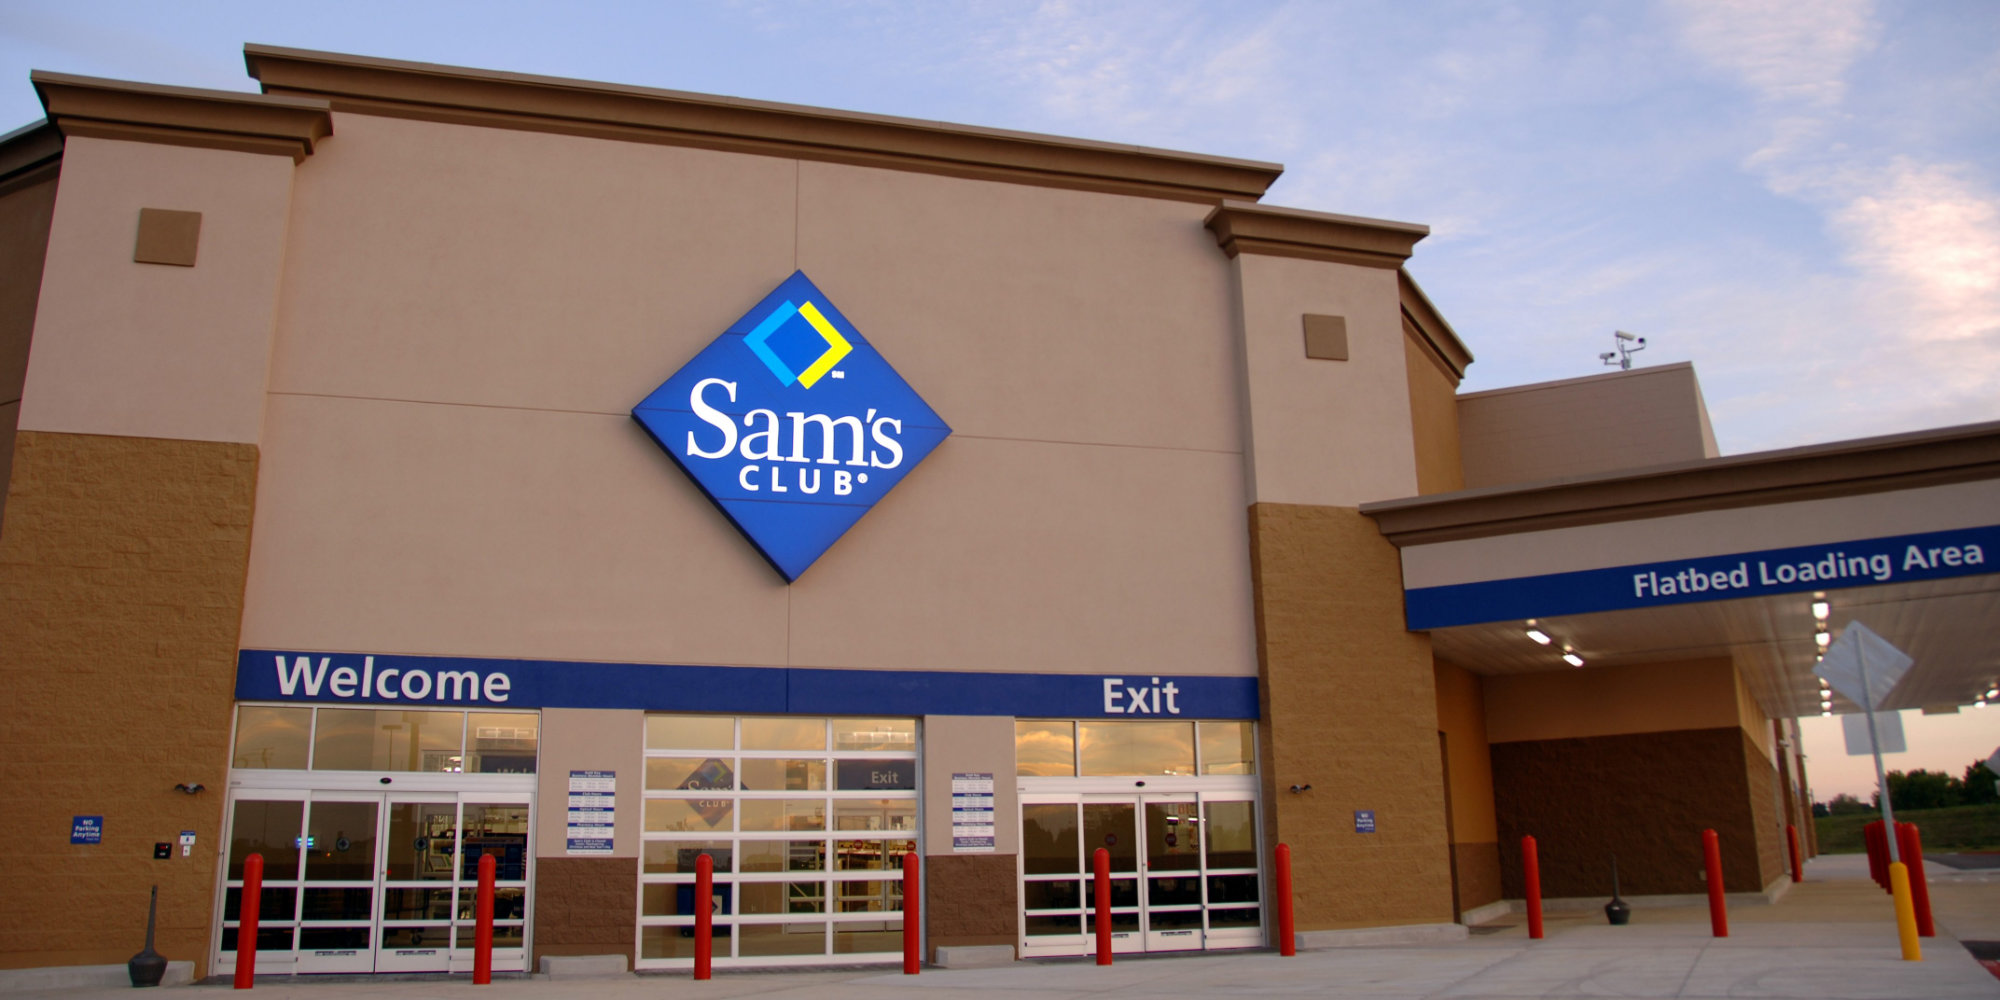 Here's a 1-yr. Sam's Club Membership w/ $25 in gift cards & a $10 coupon at $35 ($80 value)